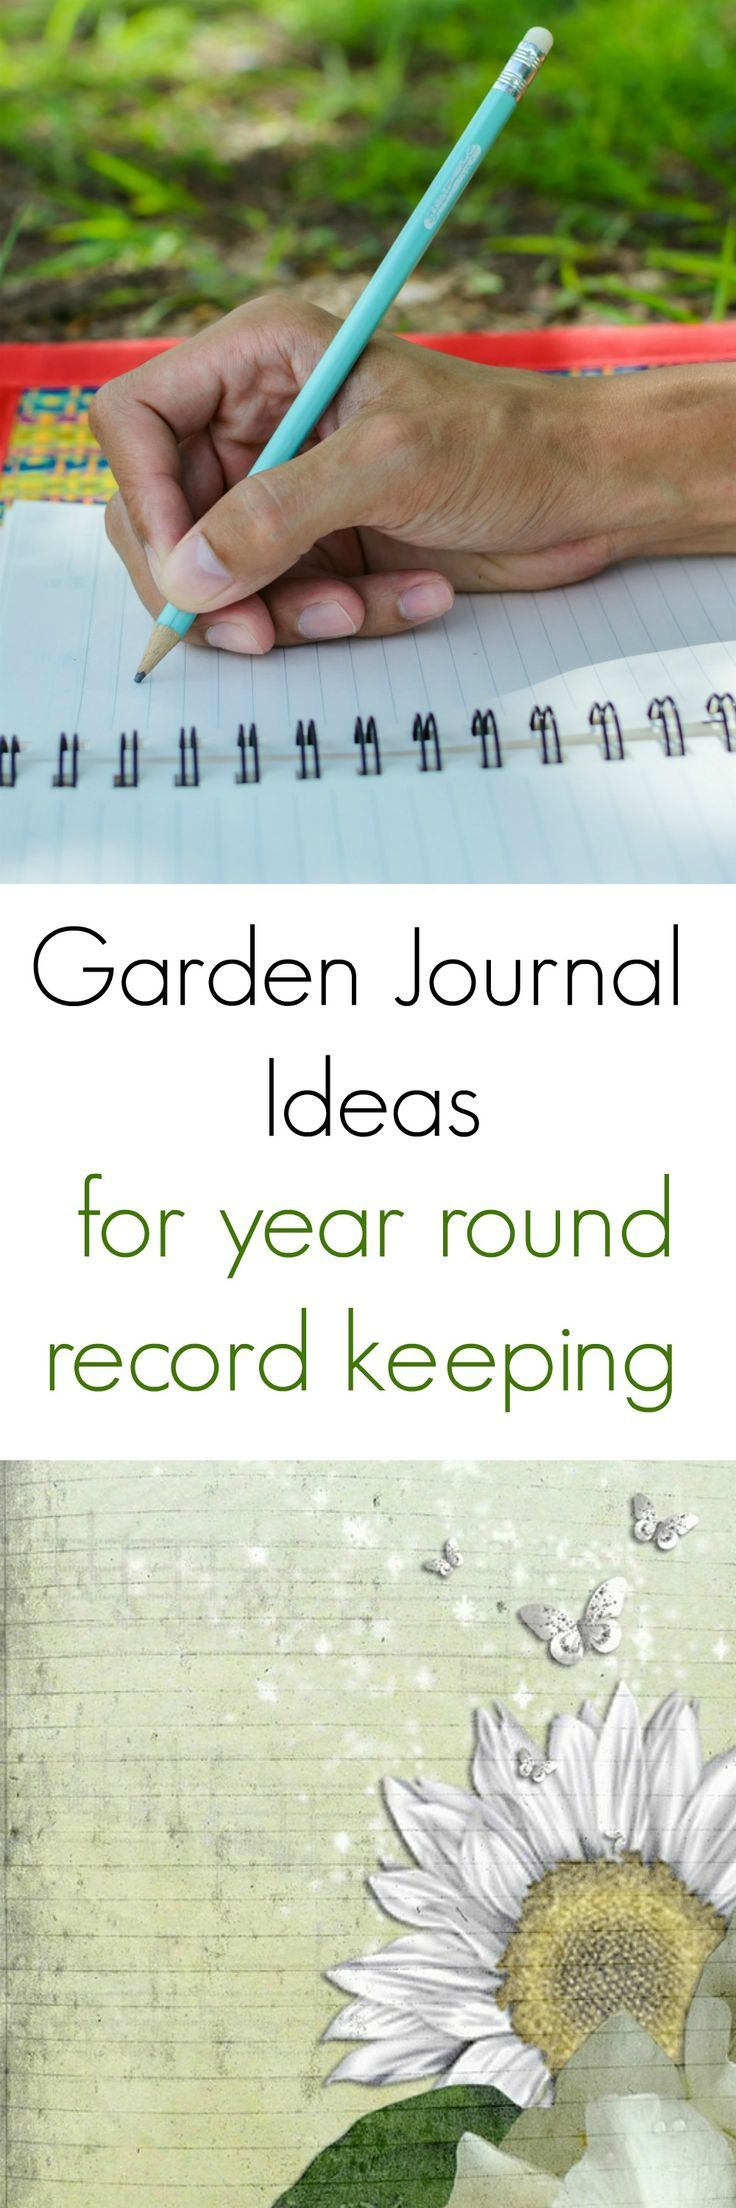 Garden Journal Ideas and Tips for Year Round Record Keeping